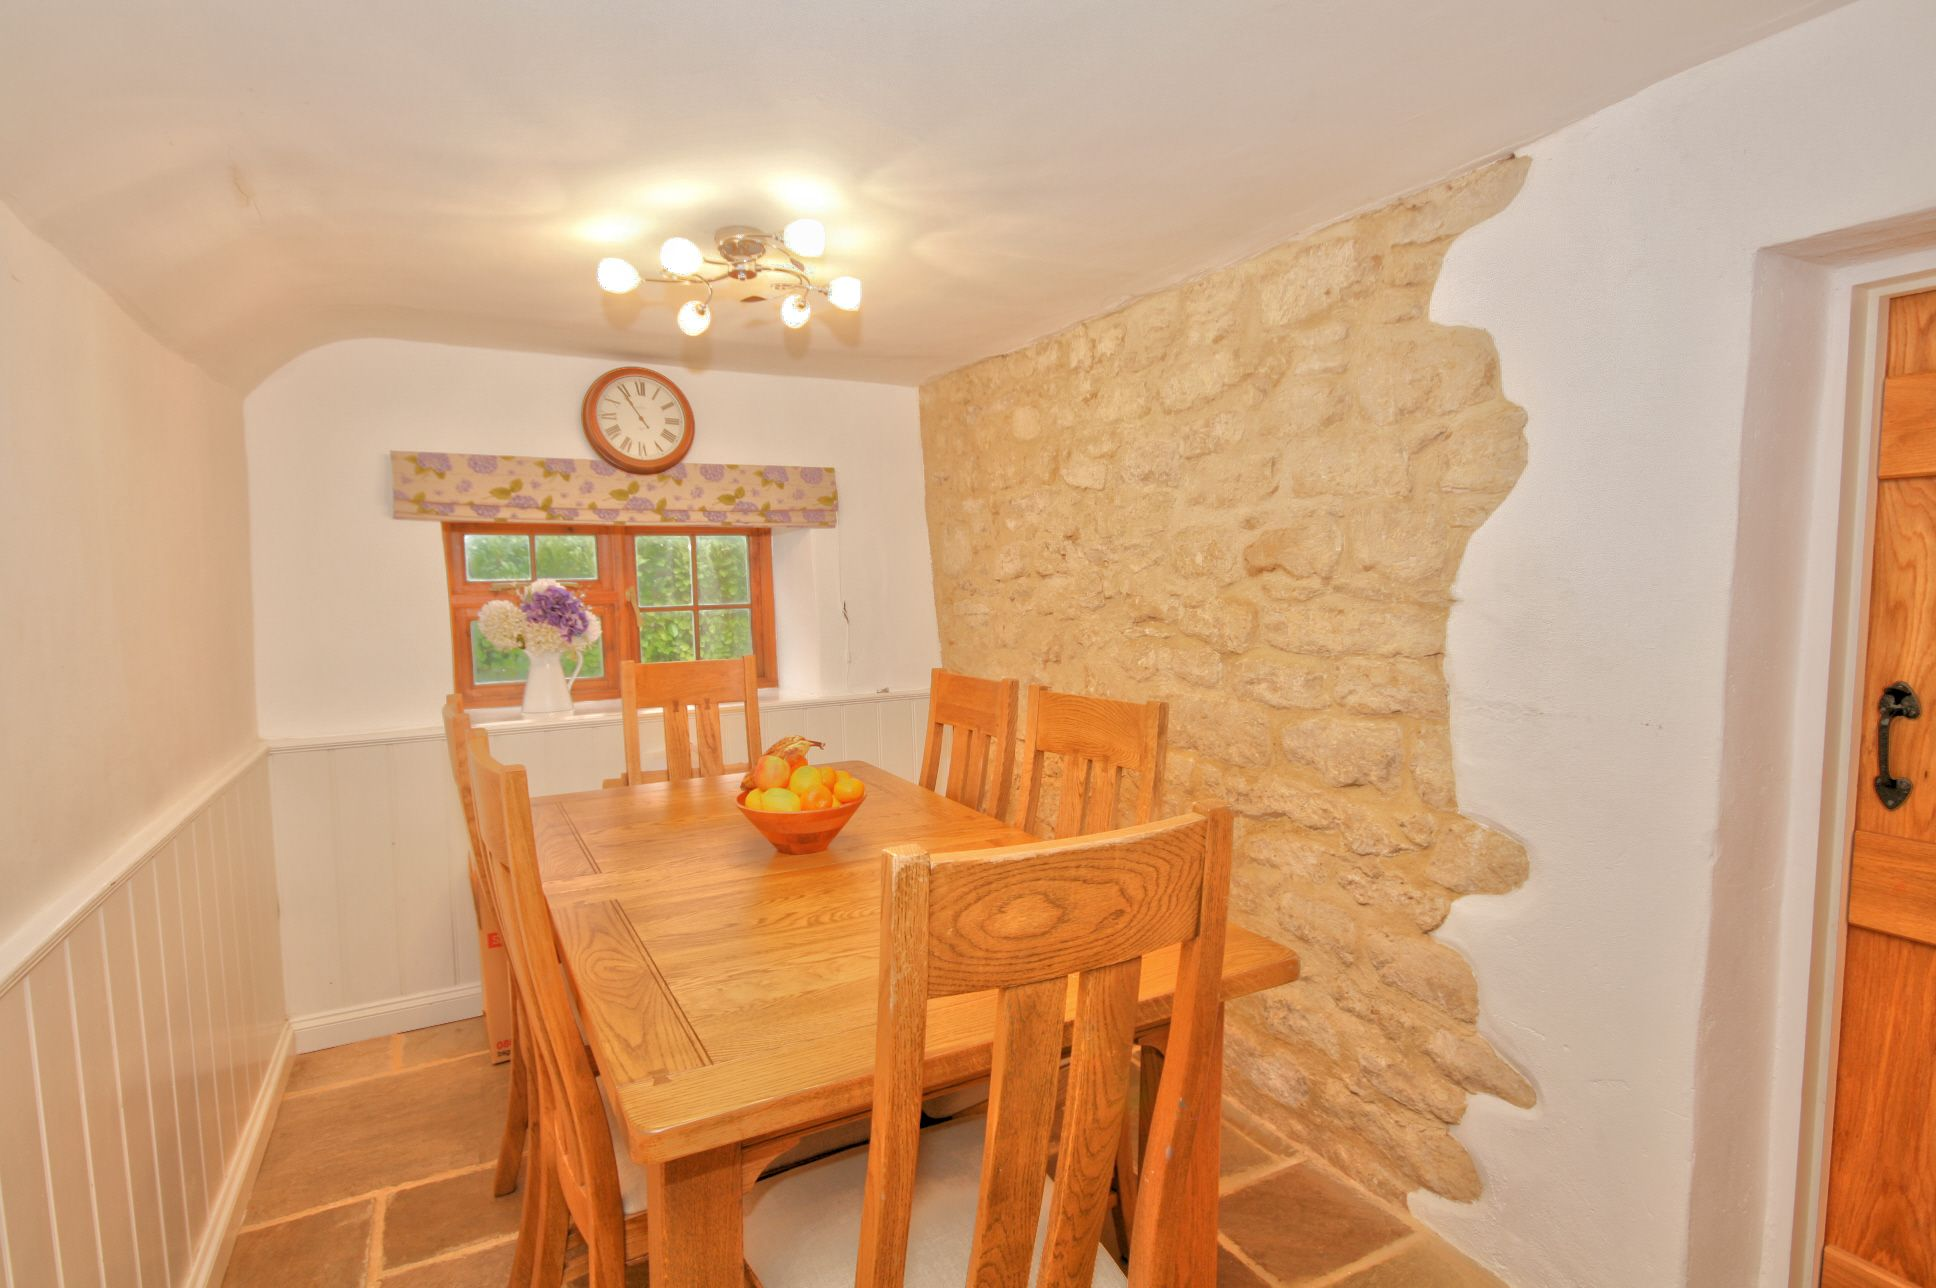 4 Bedroom Cottage House For Sale - Photograph 4